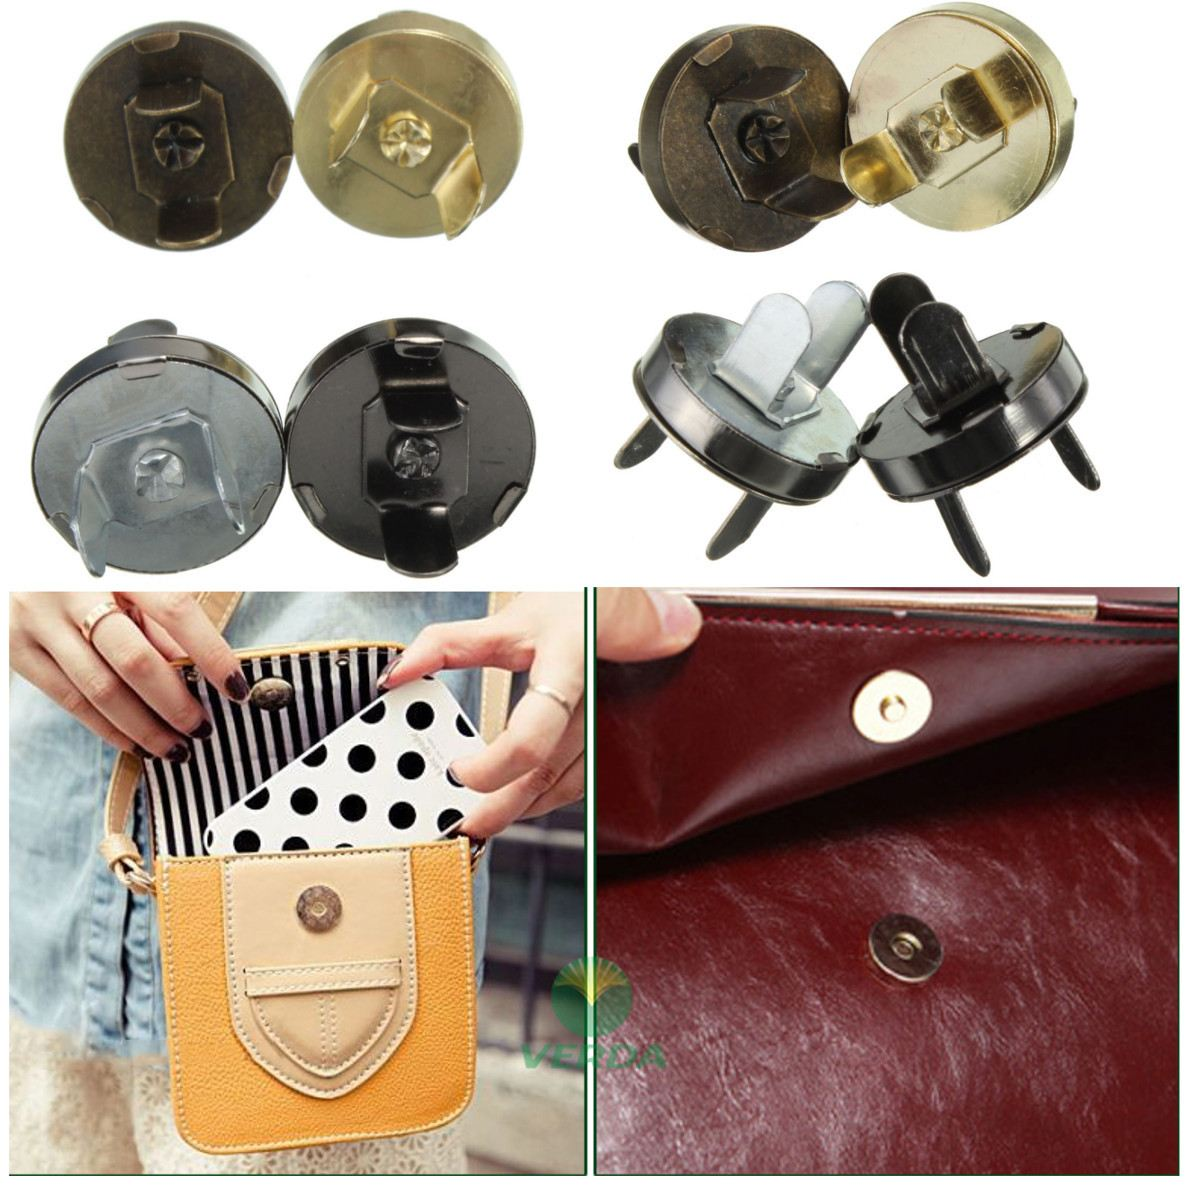 5pc/lot 18MM Magnetic Snap Fasteners Clasps Snap Buttons Purse Wallet Bags Parts Accessories Handbag DIY Replacement Accessories духовой шкаф bosch hbg517bs0r